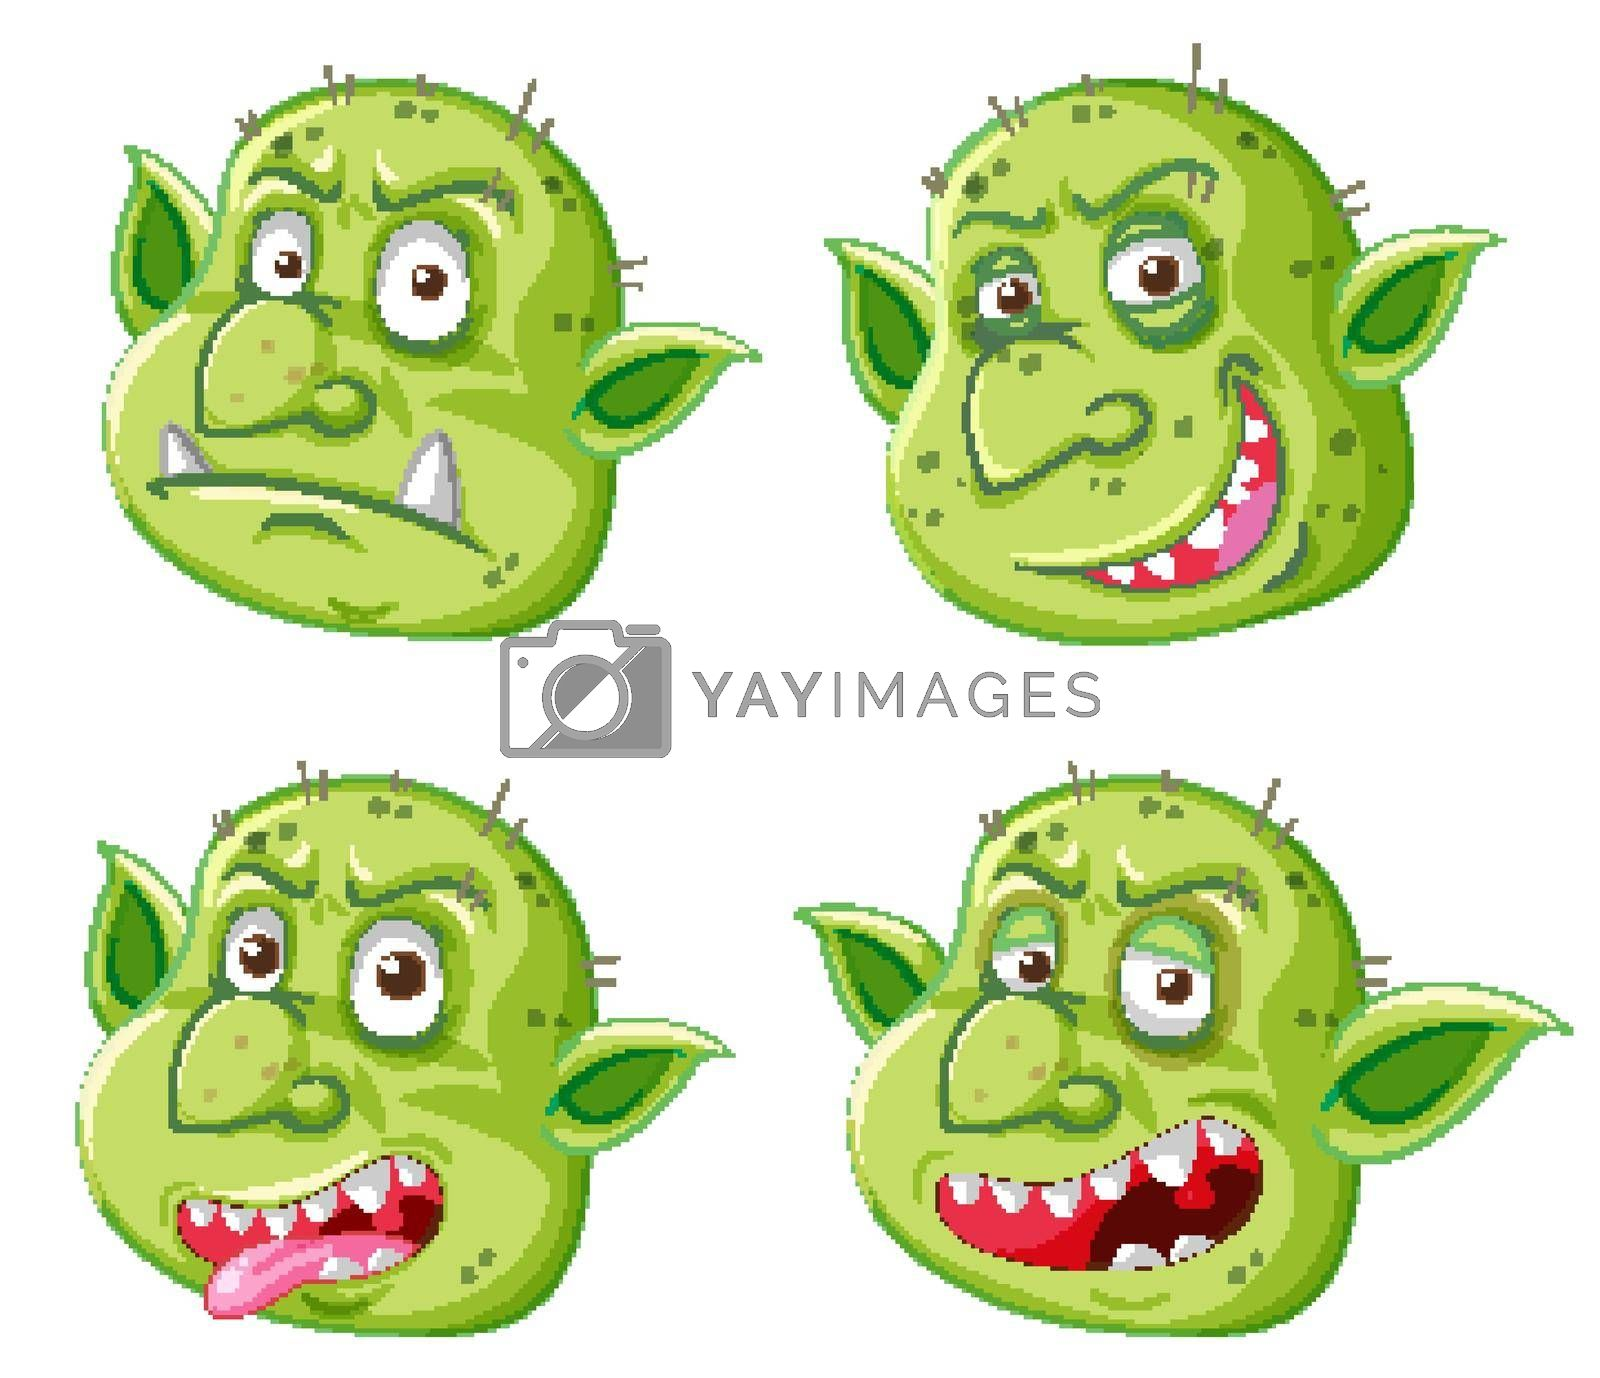 Royalty free image of Set of green goblin or troll face in different expressions in cartoon style isolated by iimages